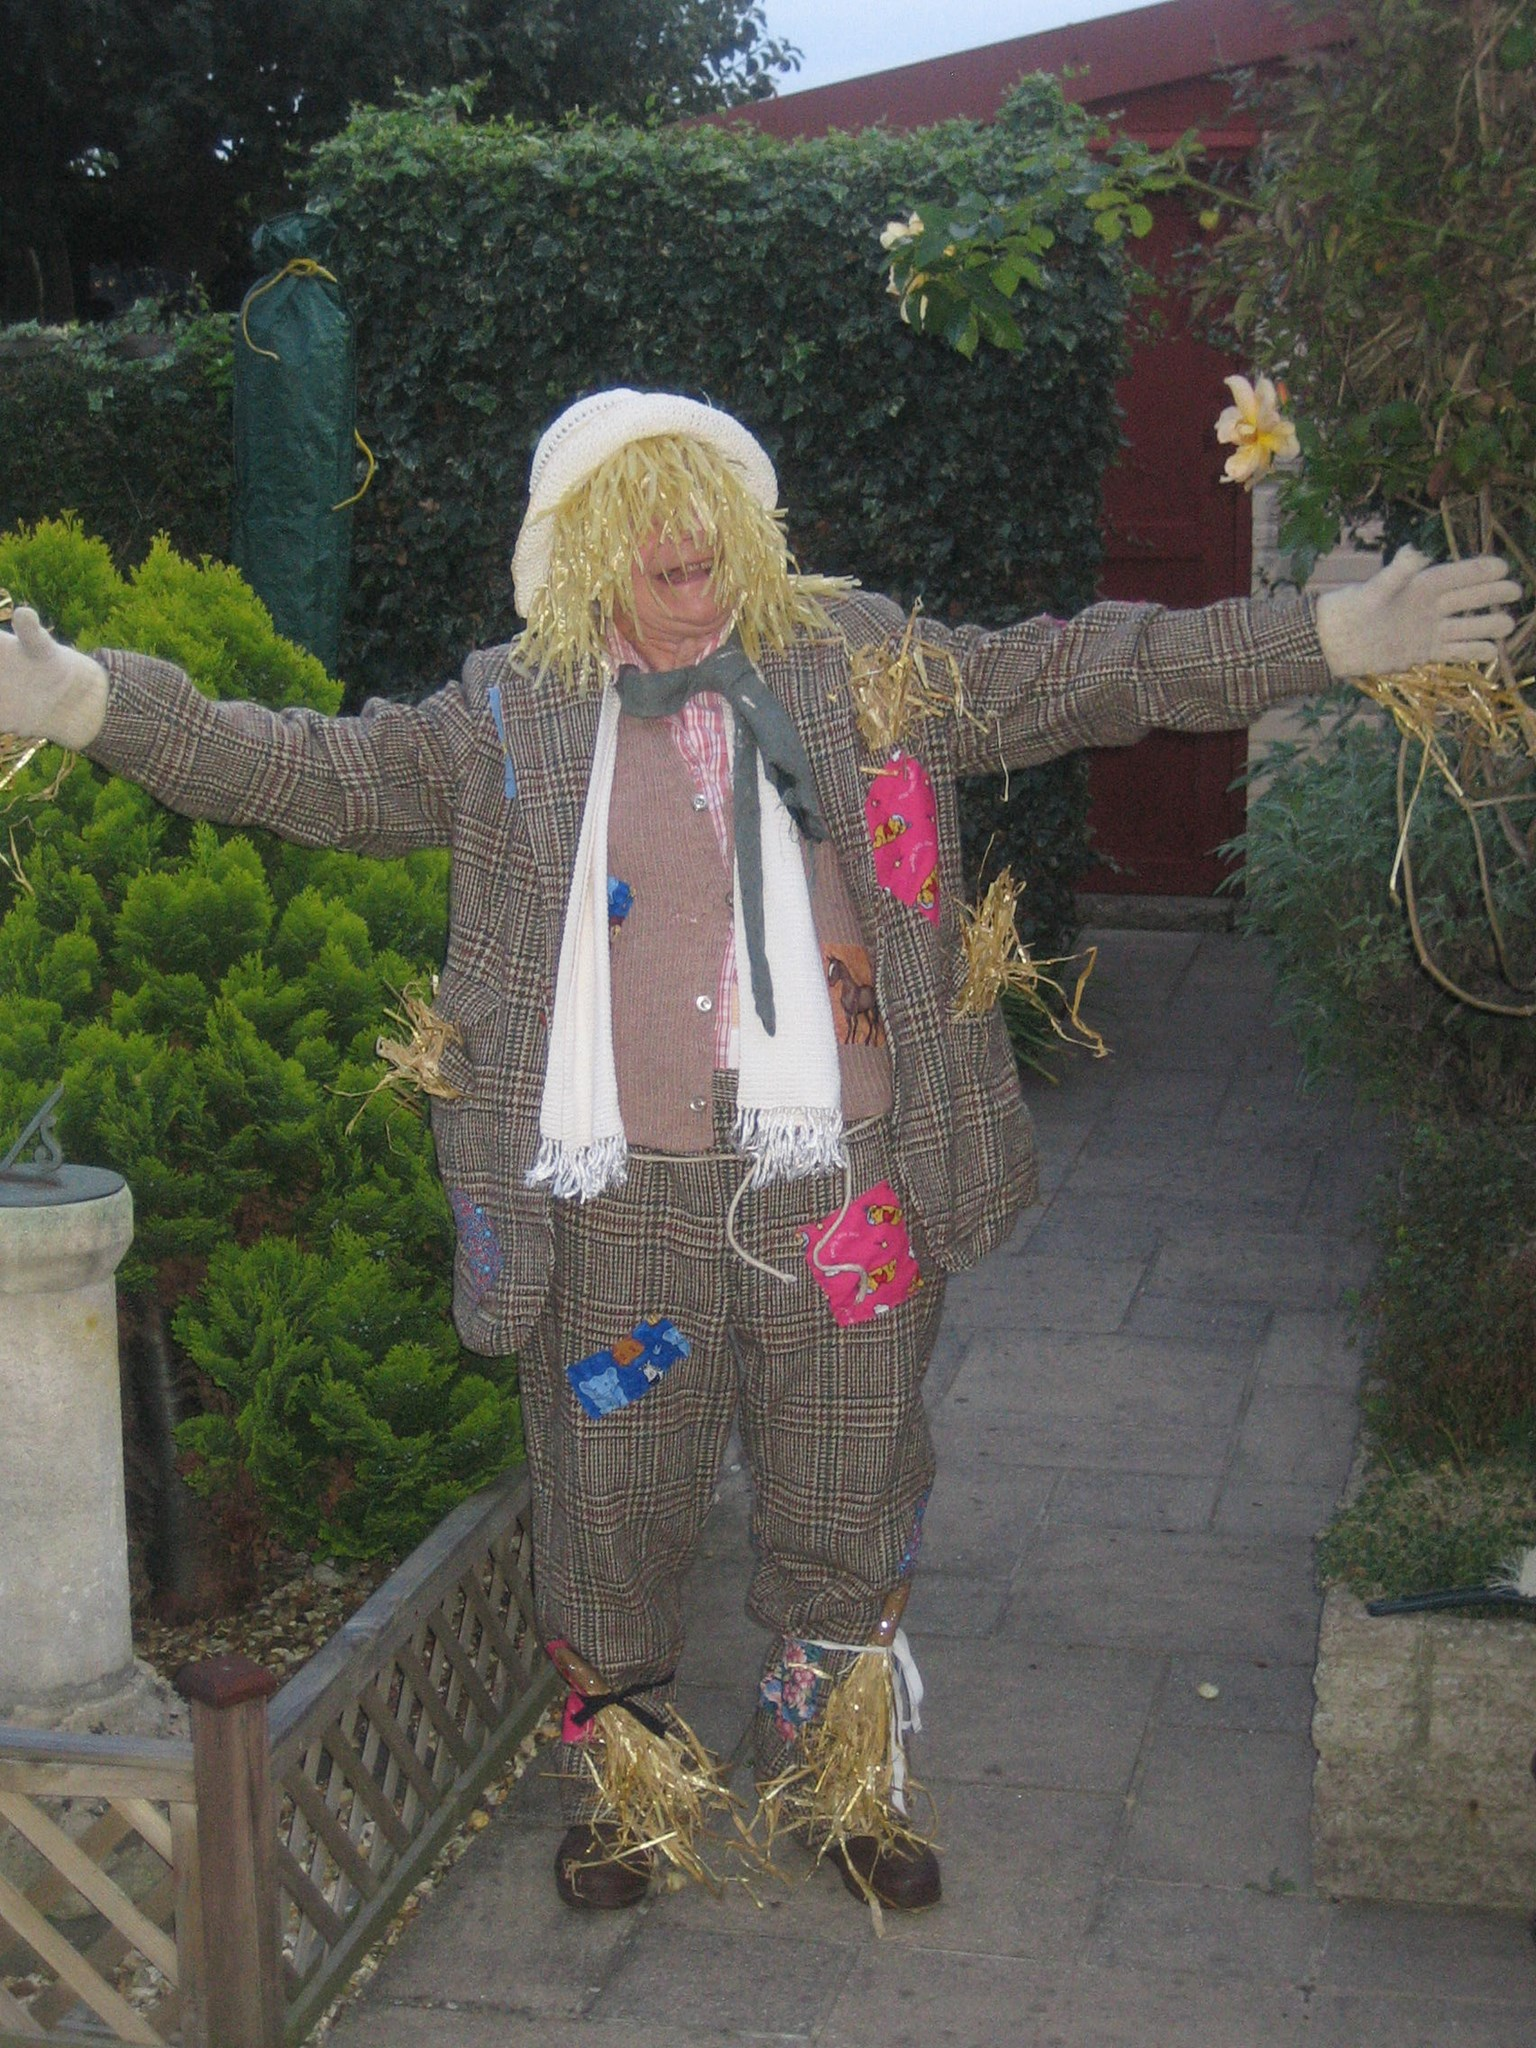 2009-08-31 Mum as a scarecrow in Women's Institute play costume